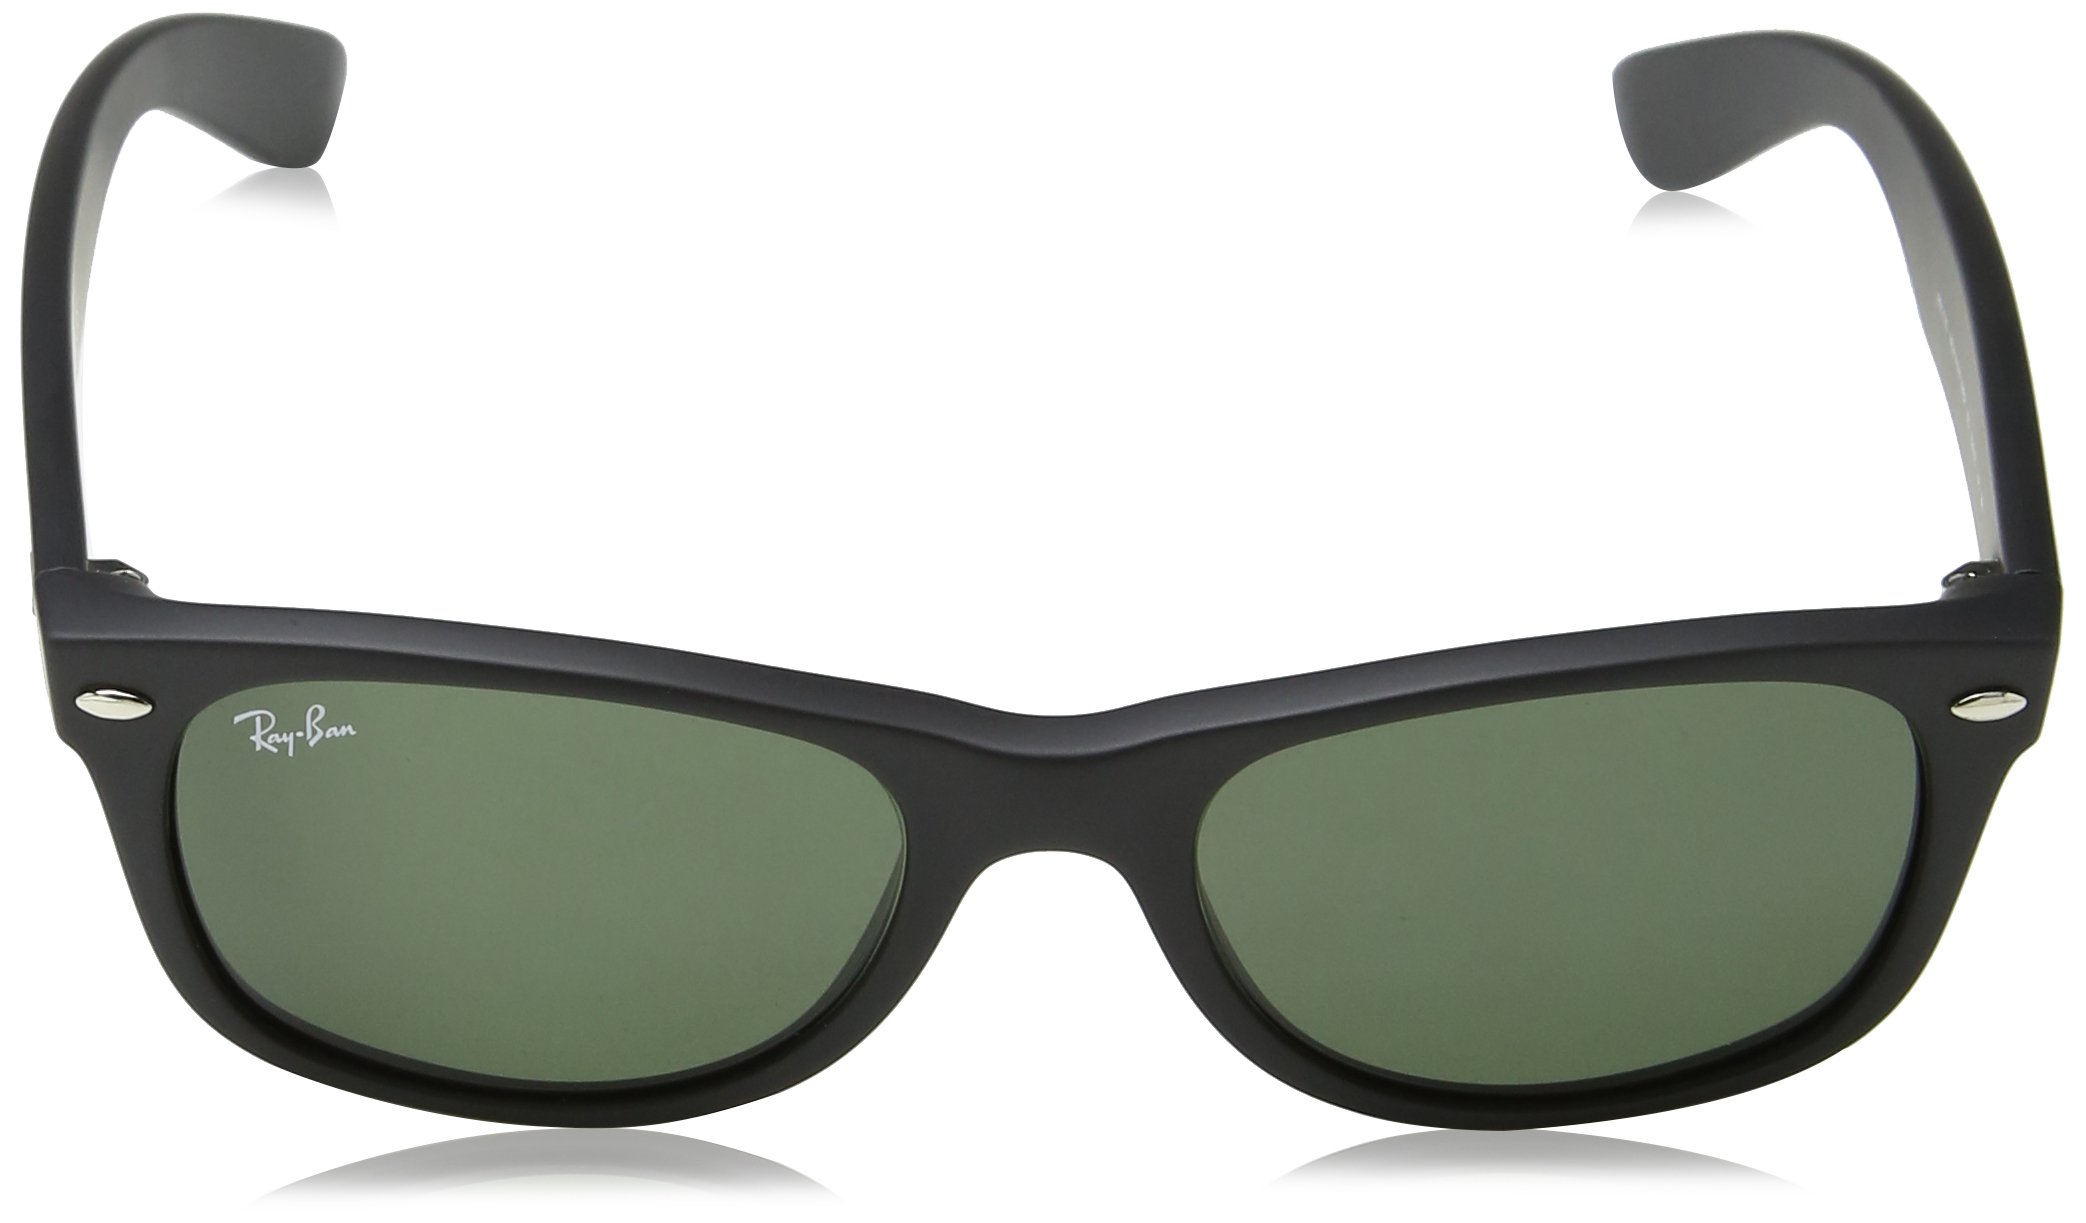 Ray-Ban RB2132 New Wayfarer Sunglasses, Black (622), 52 mm by Ray-Ban (Image #2)